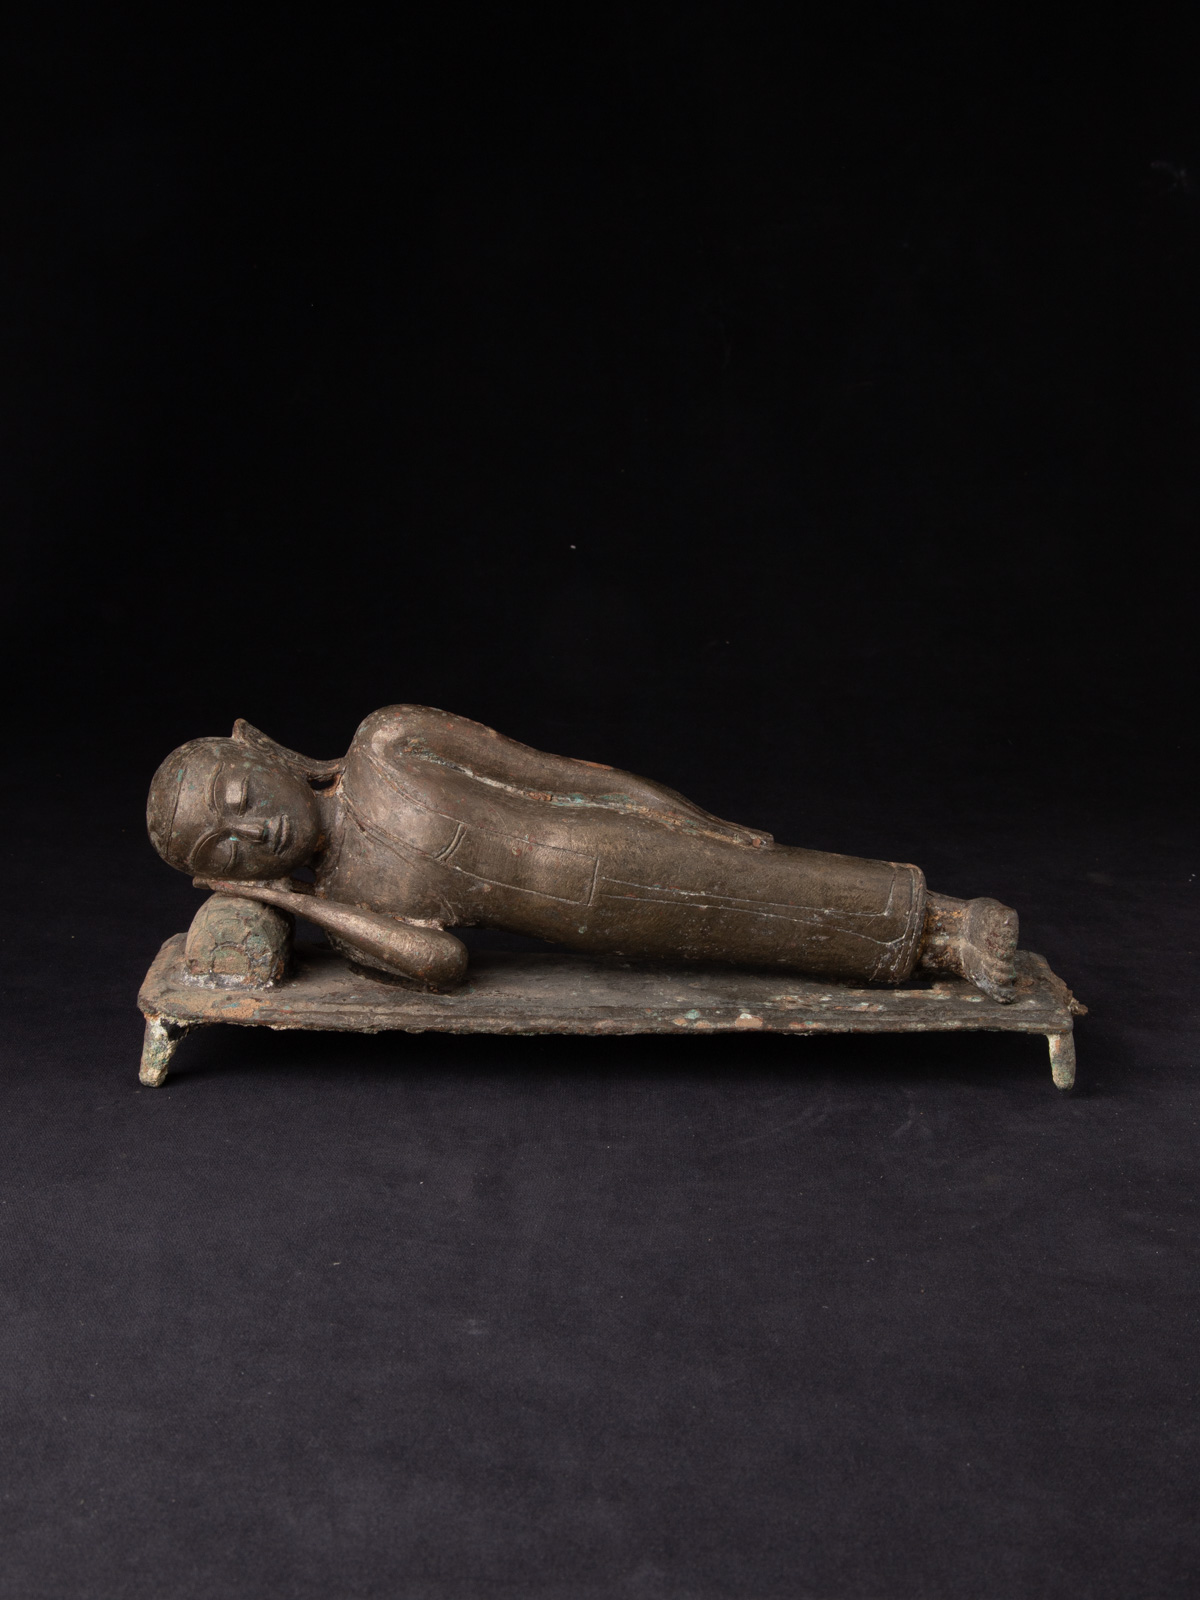 15th century Burmese Monk statue from Burma made from Bronze